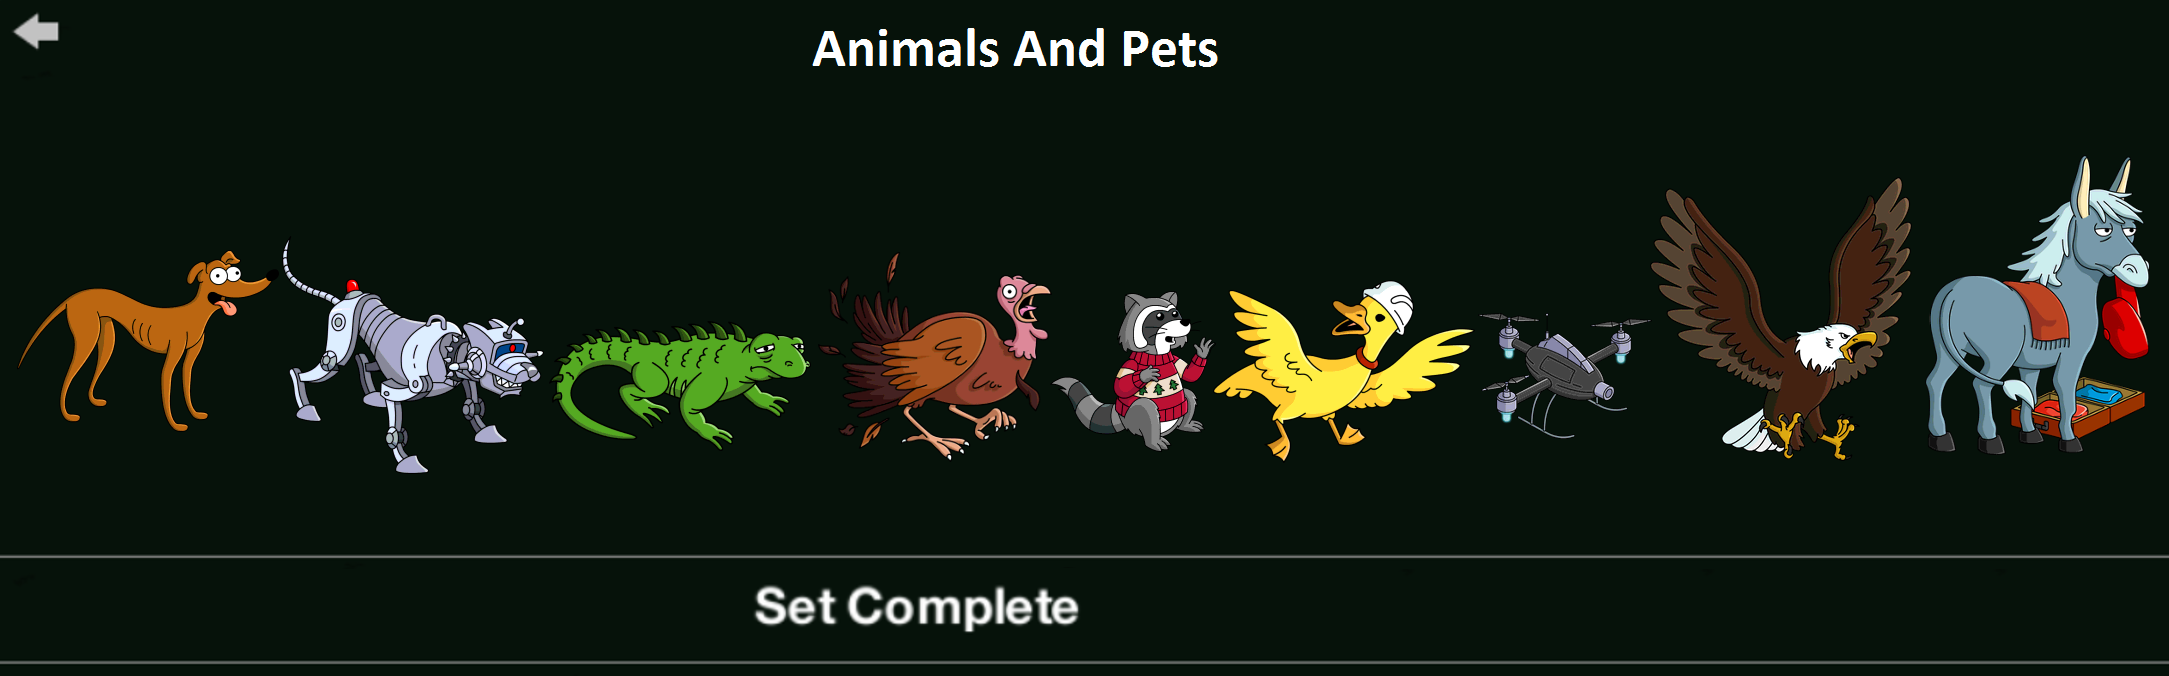 Animals and pets.png